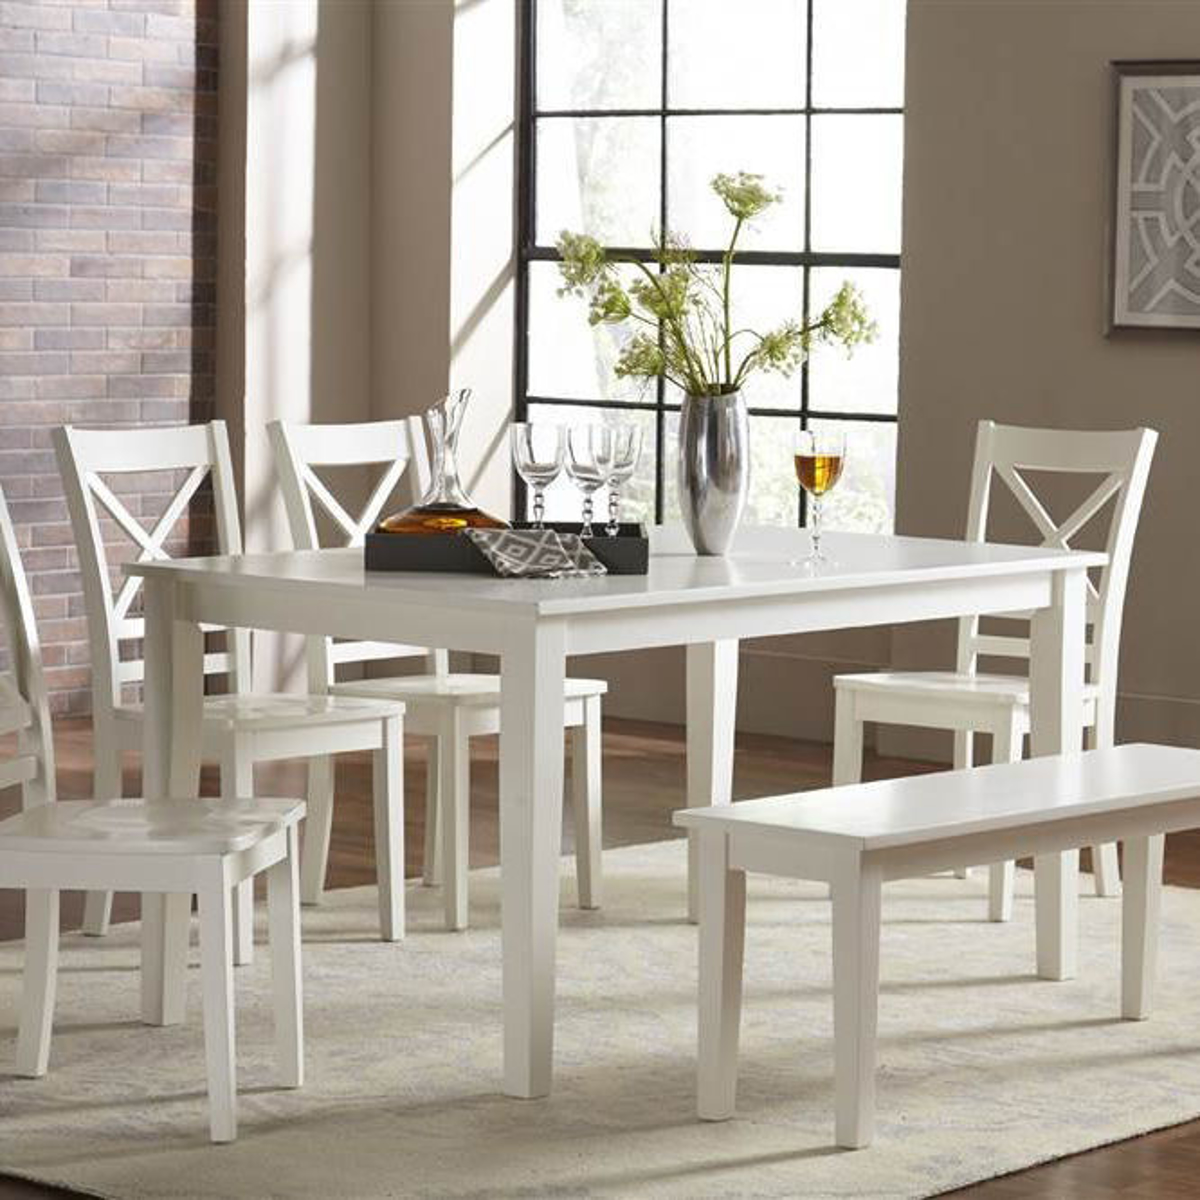 Picture of Simplicity Paperwhite Rectangular Fix Top Dining Table